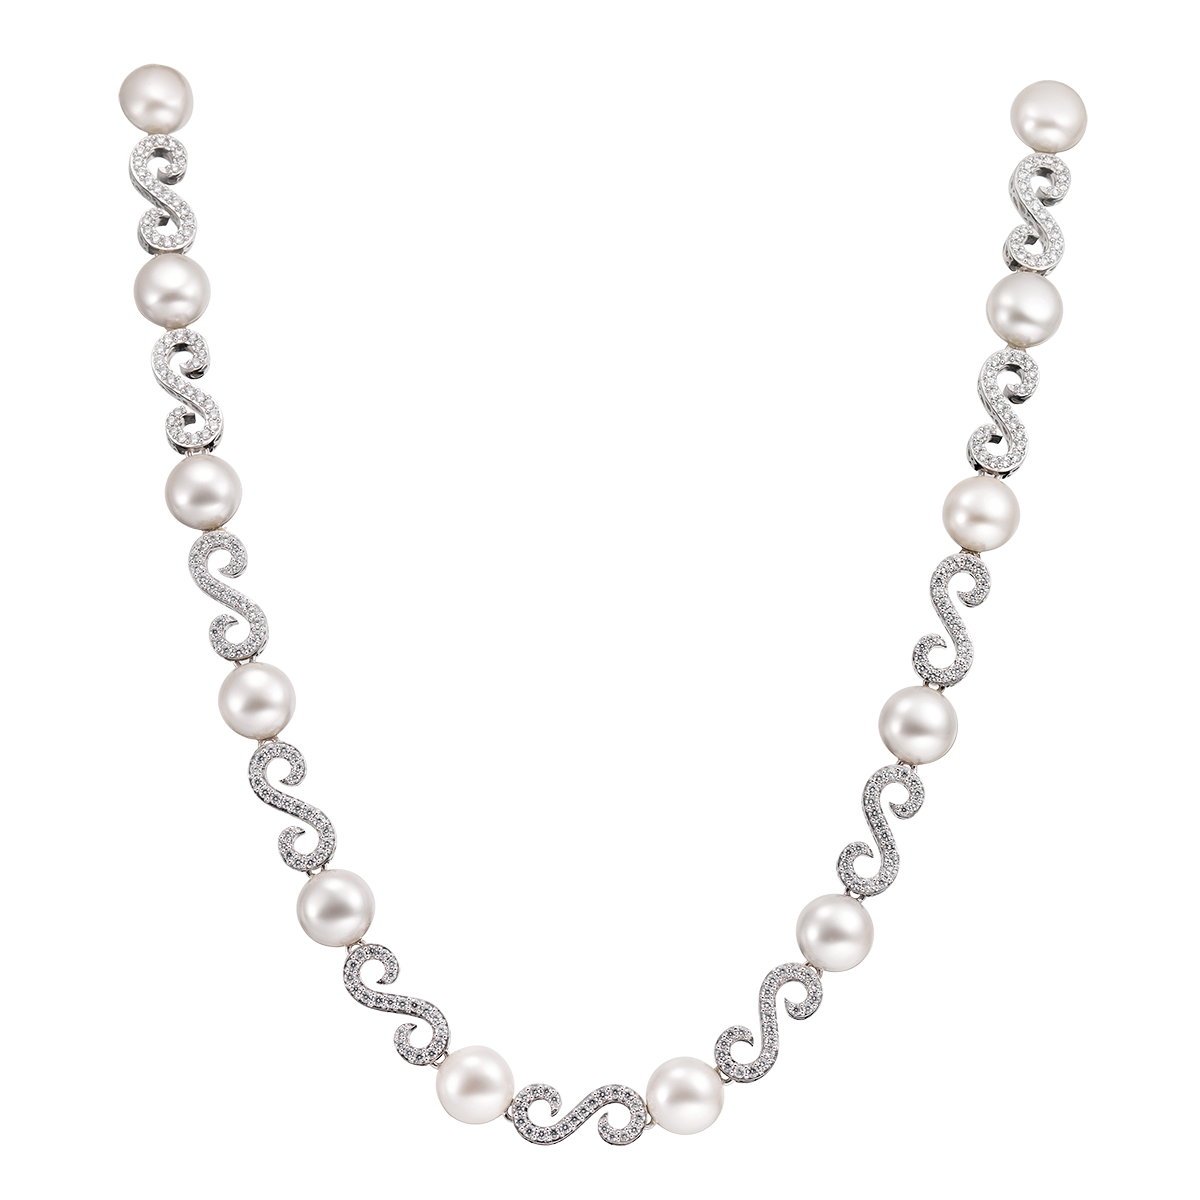 Transparent pearls full body. Arabesque pearl necklace ciro